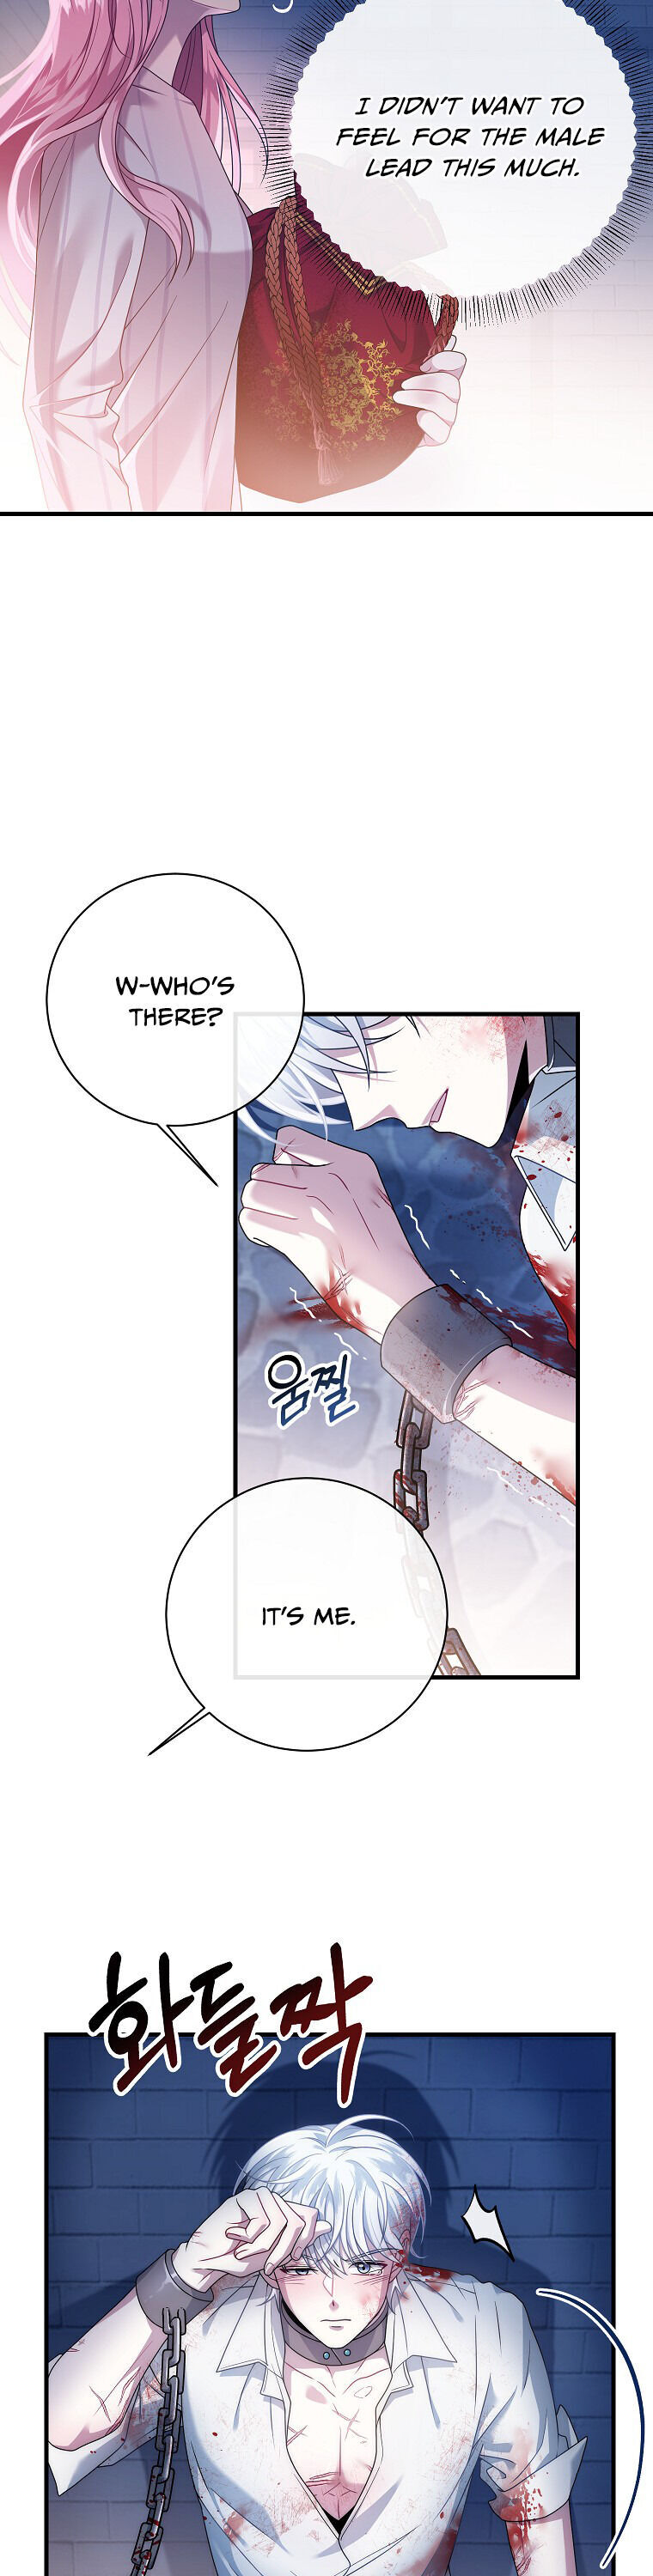 I Met The Male Lead In Prison - chapter 10 - #3